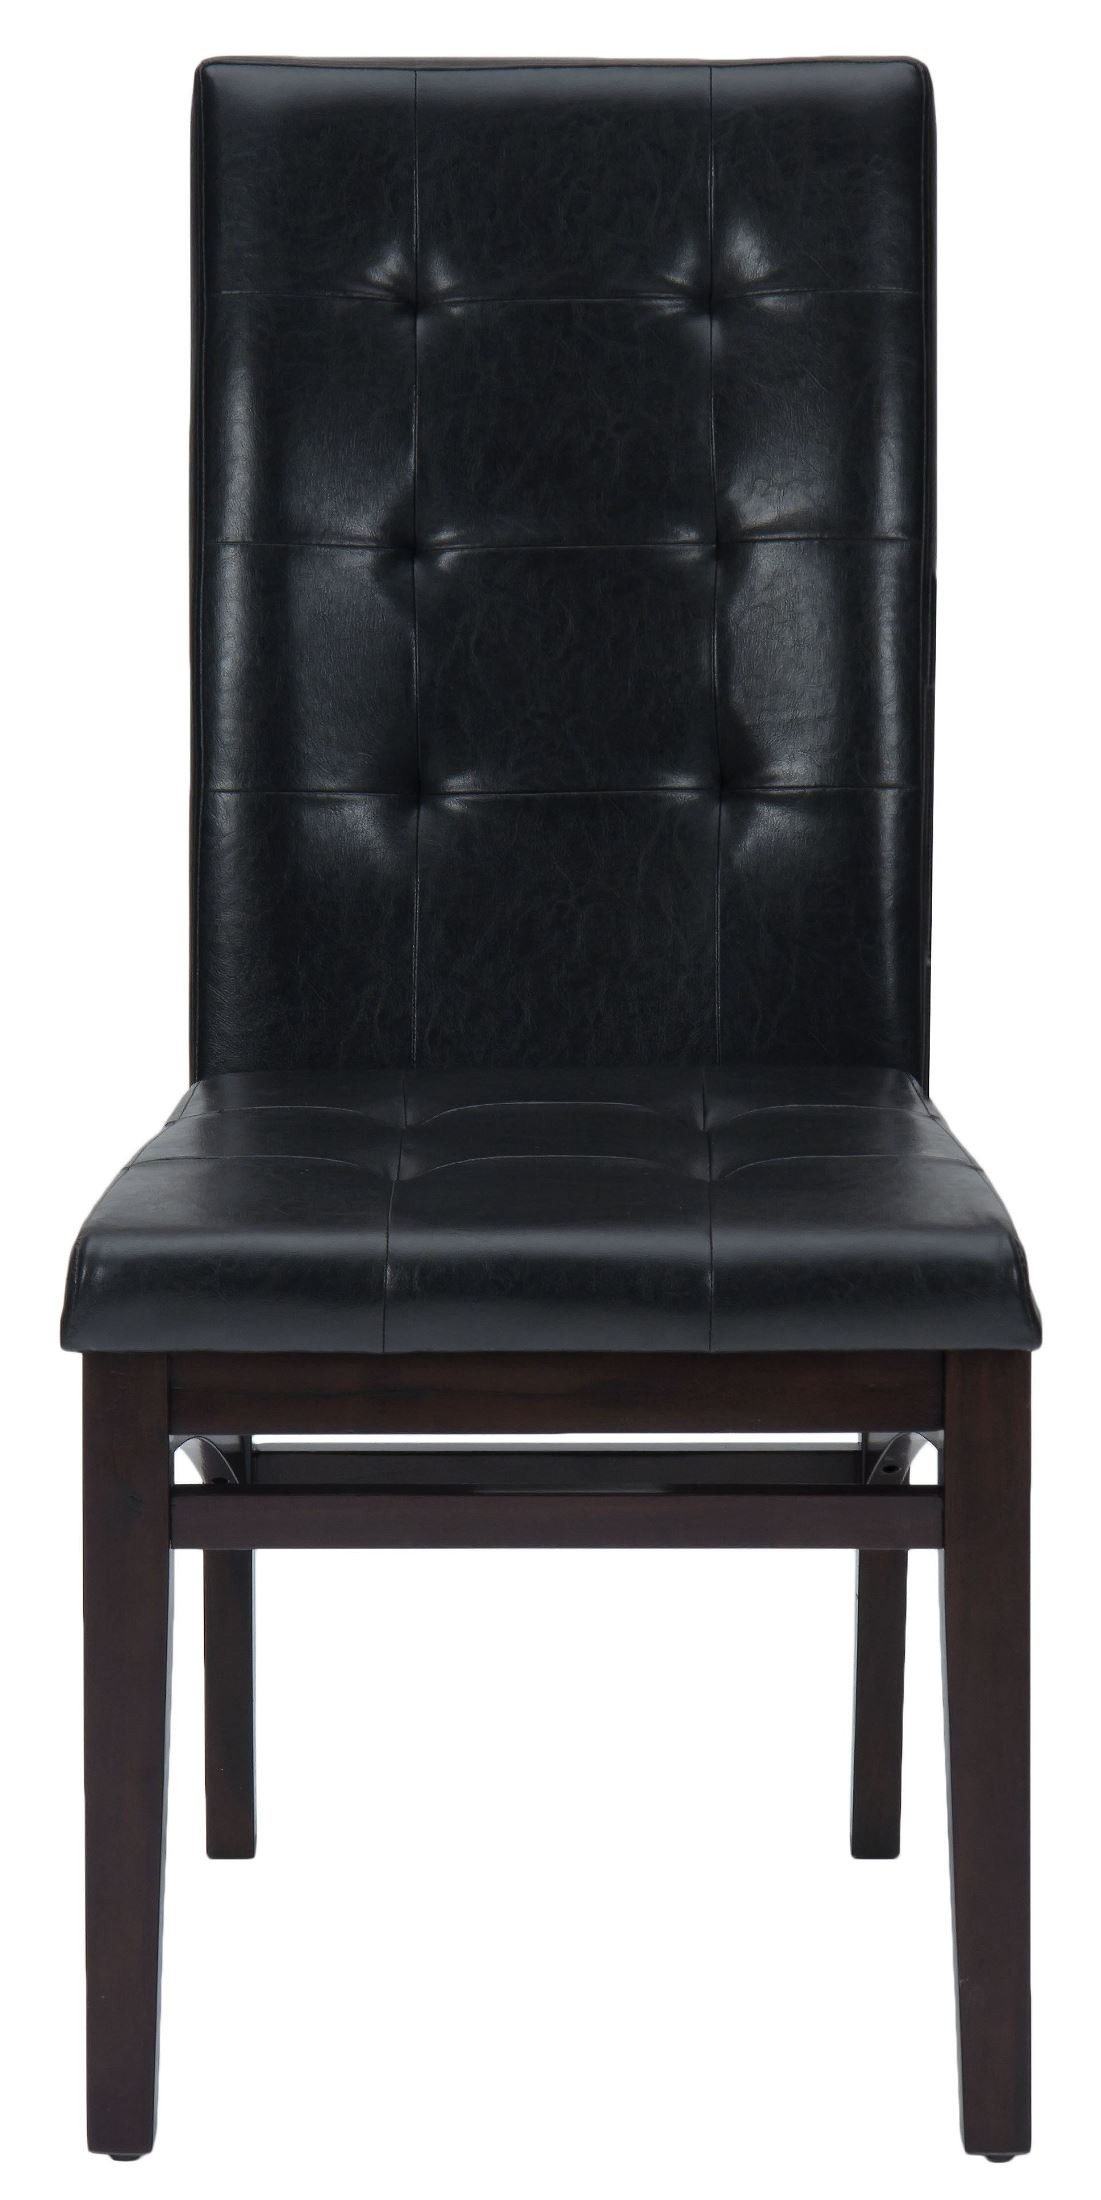 chadwick espresso faux leather tufted back upholstered dining chair 863 945kd jofran. Black Bedroom Furniture Sets. Home Design Ideas